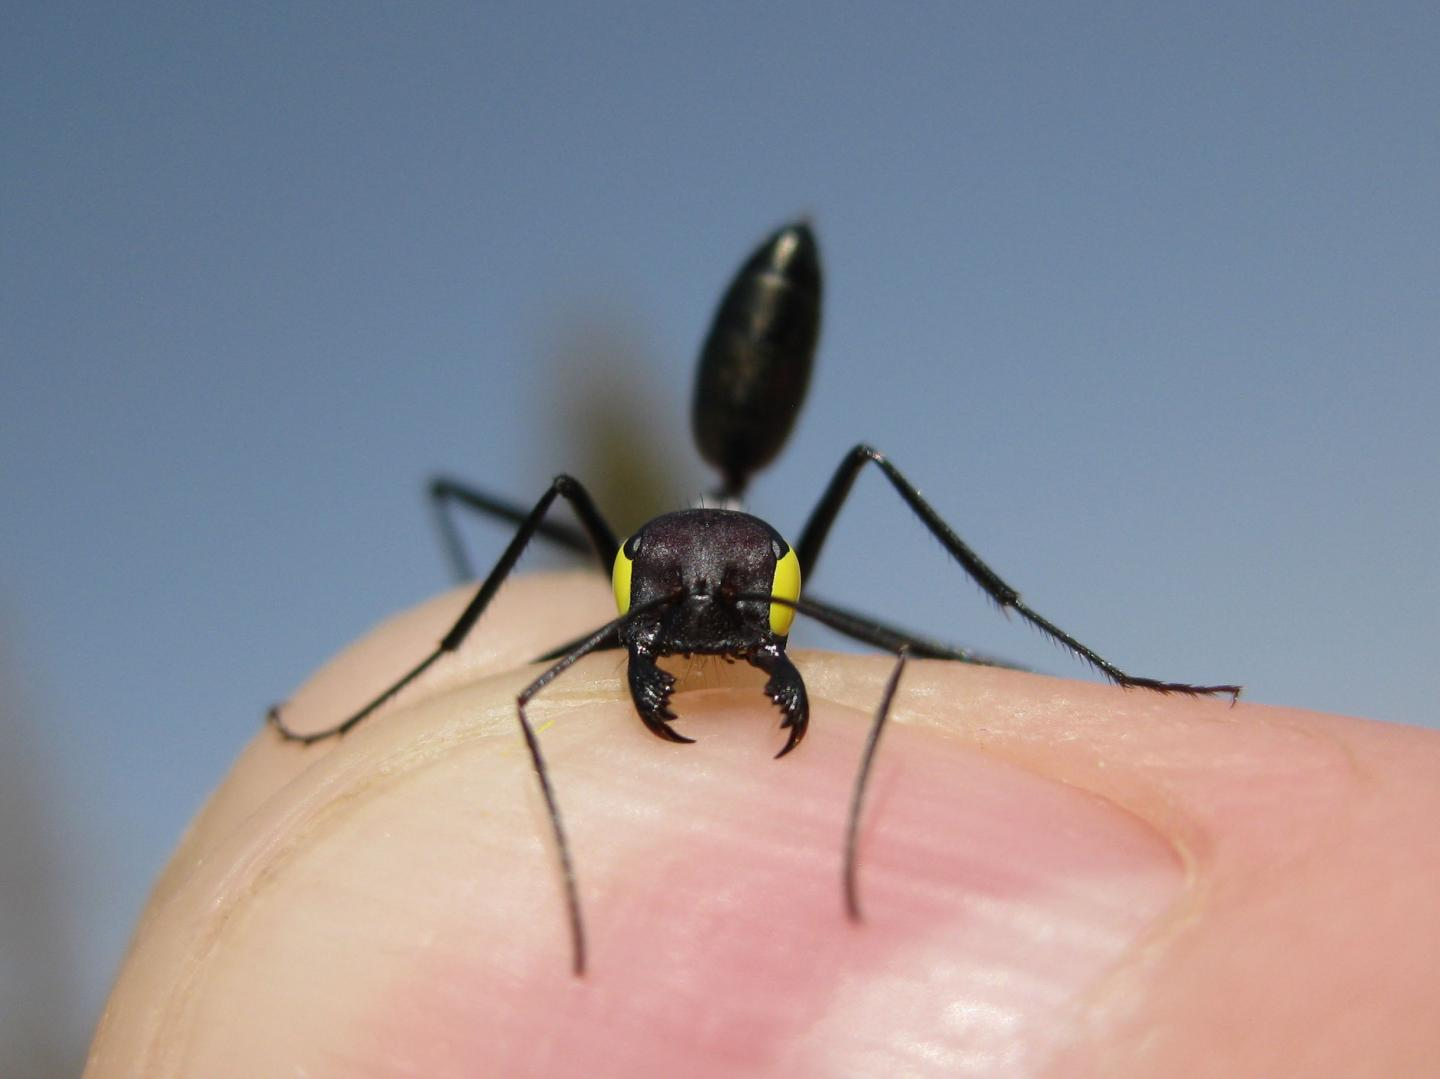 Ants Have Dual Navigation Systems